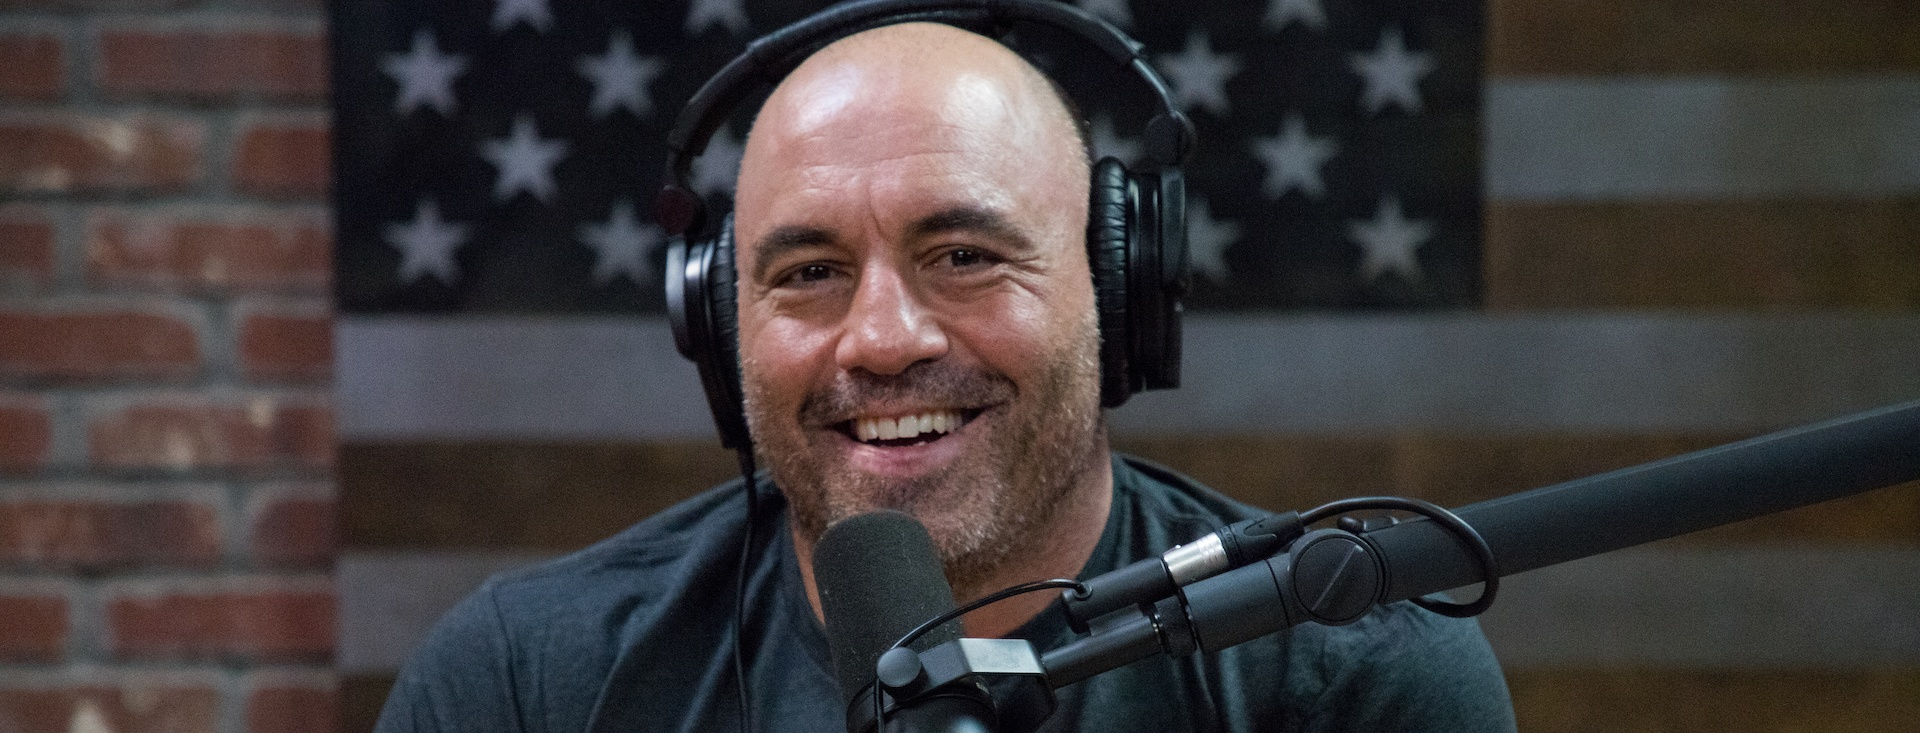 JRE potify, the joe rogan experience, spotify, spotify podcast, podcasts on spotify, the naina redhu experience, comedian, UFC commentator, influencer marketing podcast, brand building podcast, online brand building, social media marketing, youtube podcasts, spotify vodcast, podcast industry, podcasting